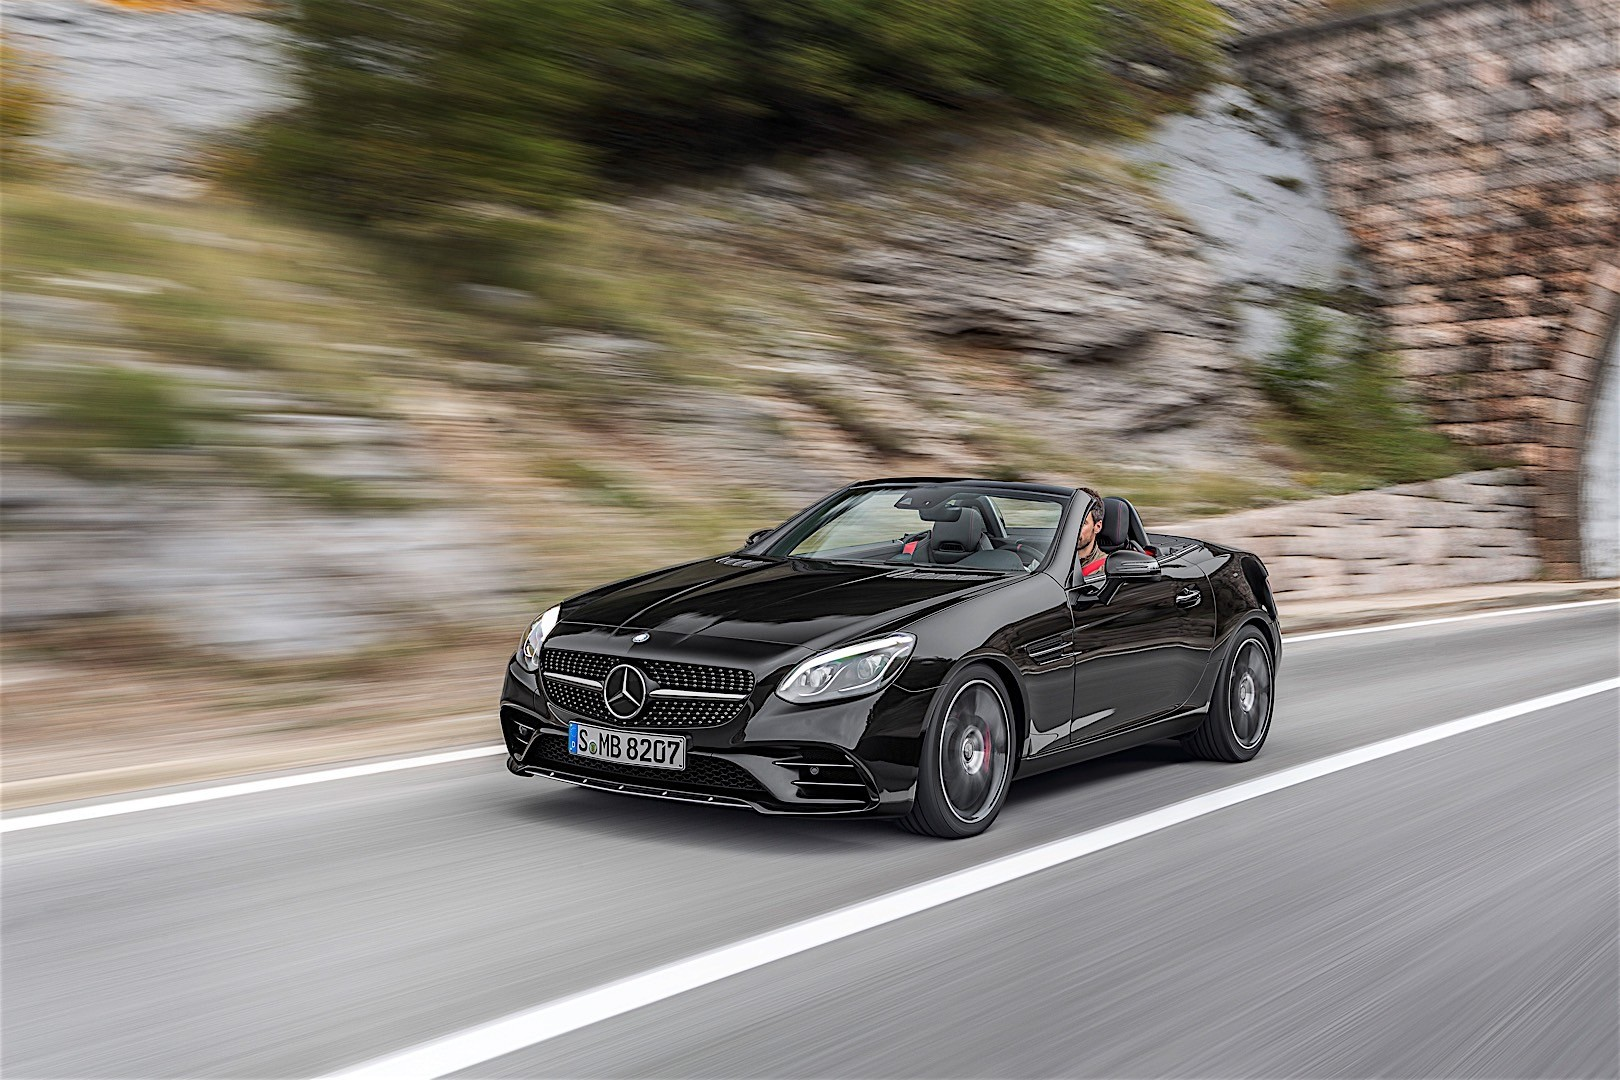 2017 mercedes benz slc is officially here but hides a for 2017 mercedes benz slc